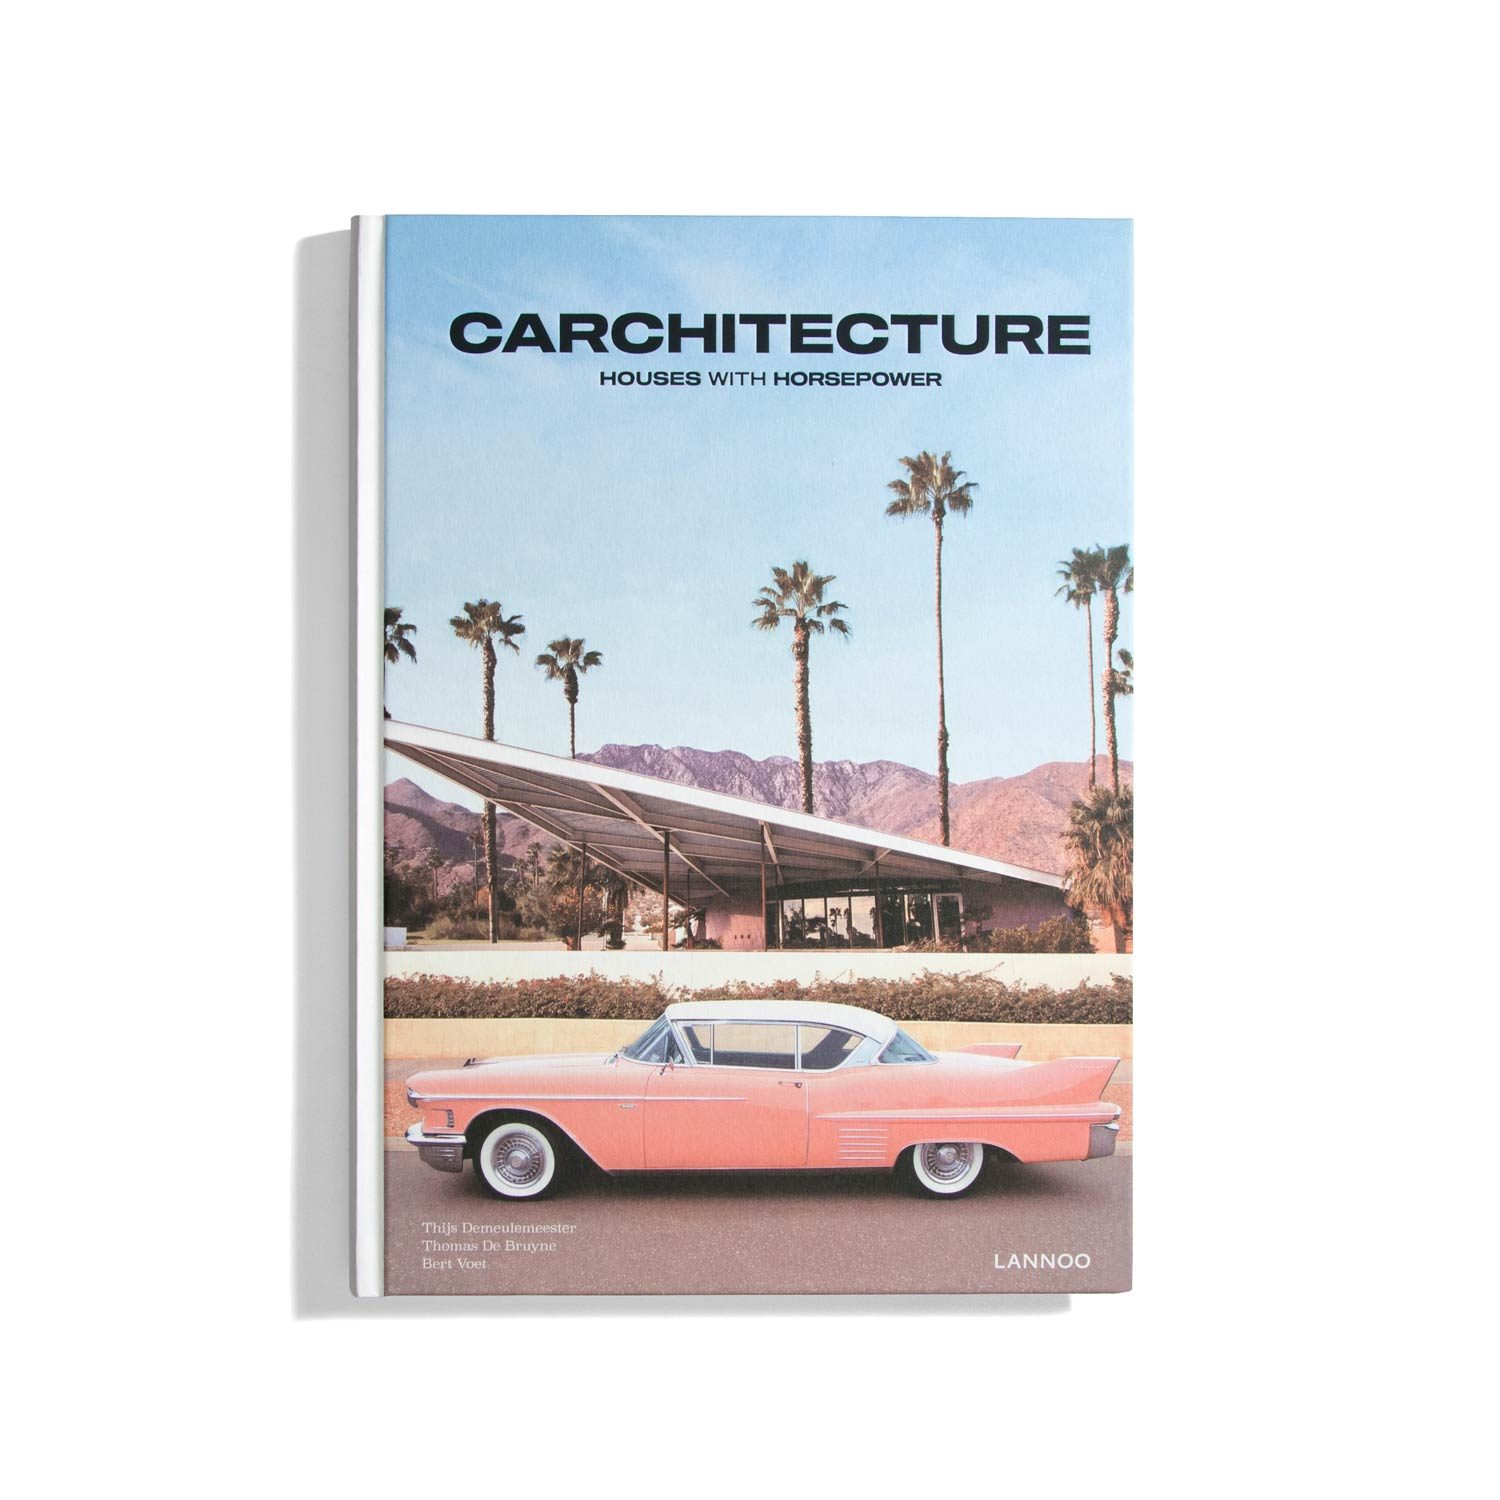 Carchitecture - Houses with Horsepower